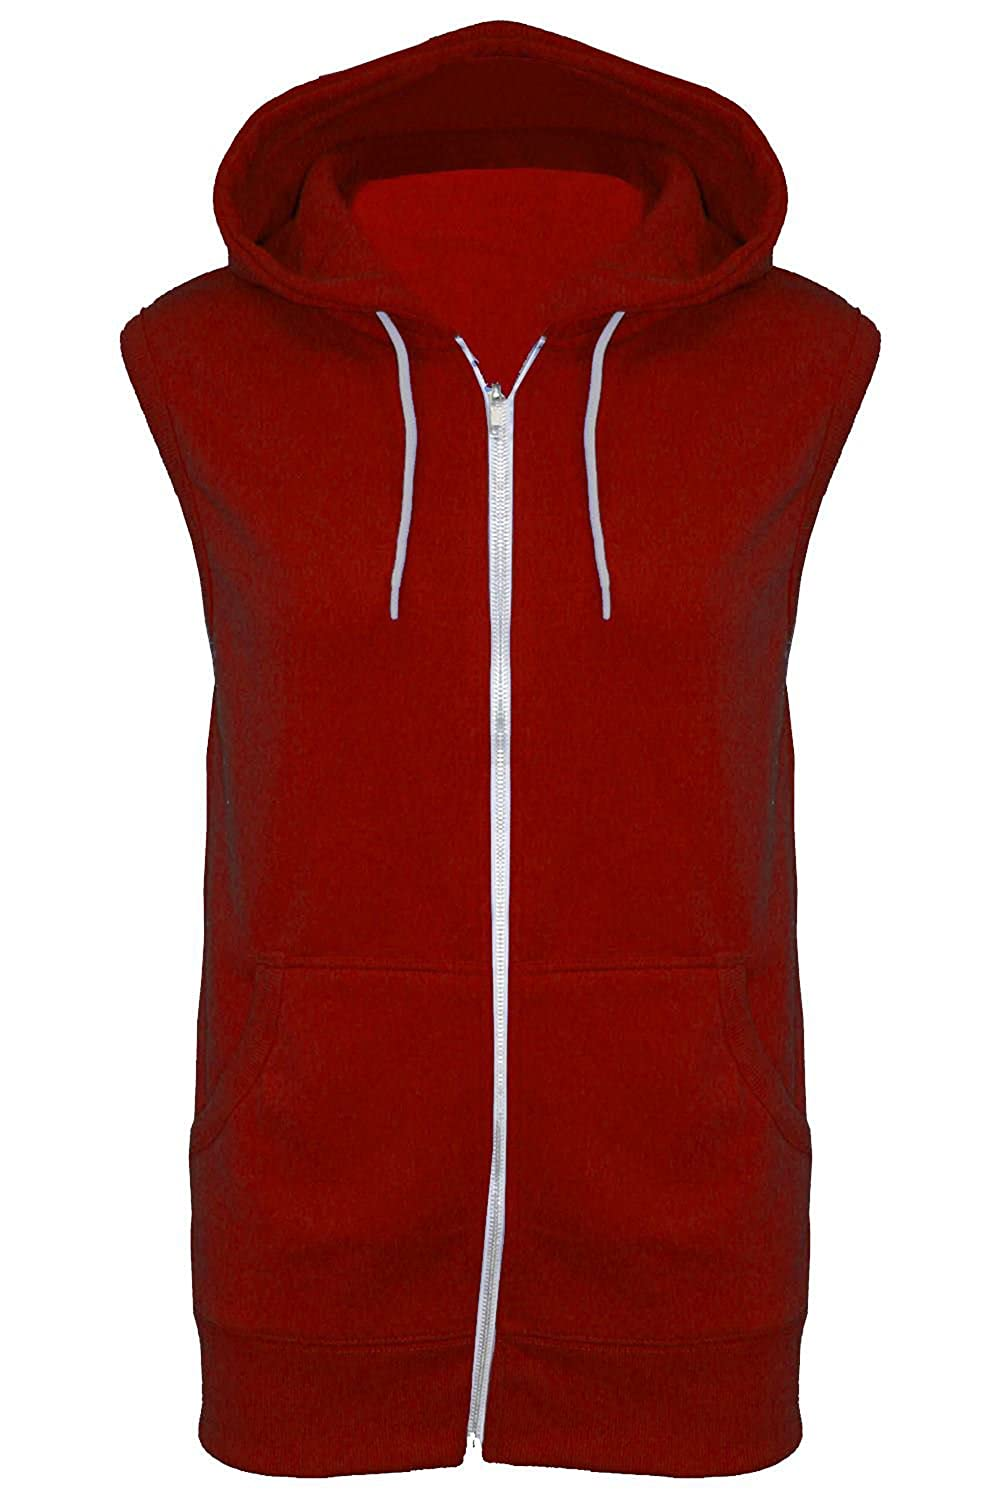 Fashion Star Mens Casual Winter Sleeveless Hooded Hoodies Zipper Gilet Sweatshirt Jacket Jumper Top UK Sizes S-XL BE JEALOUS